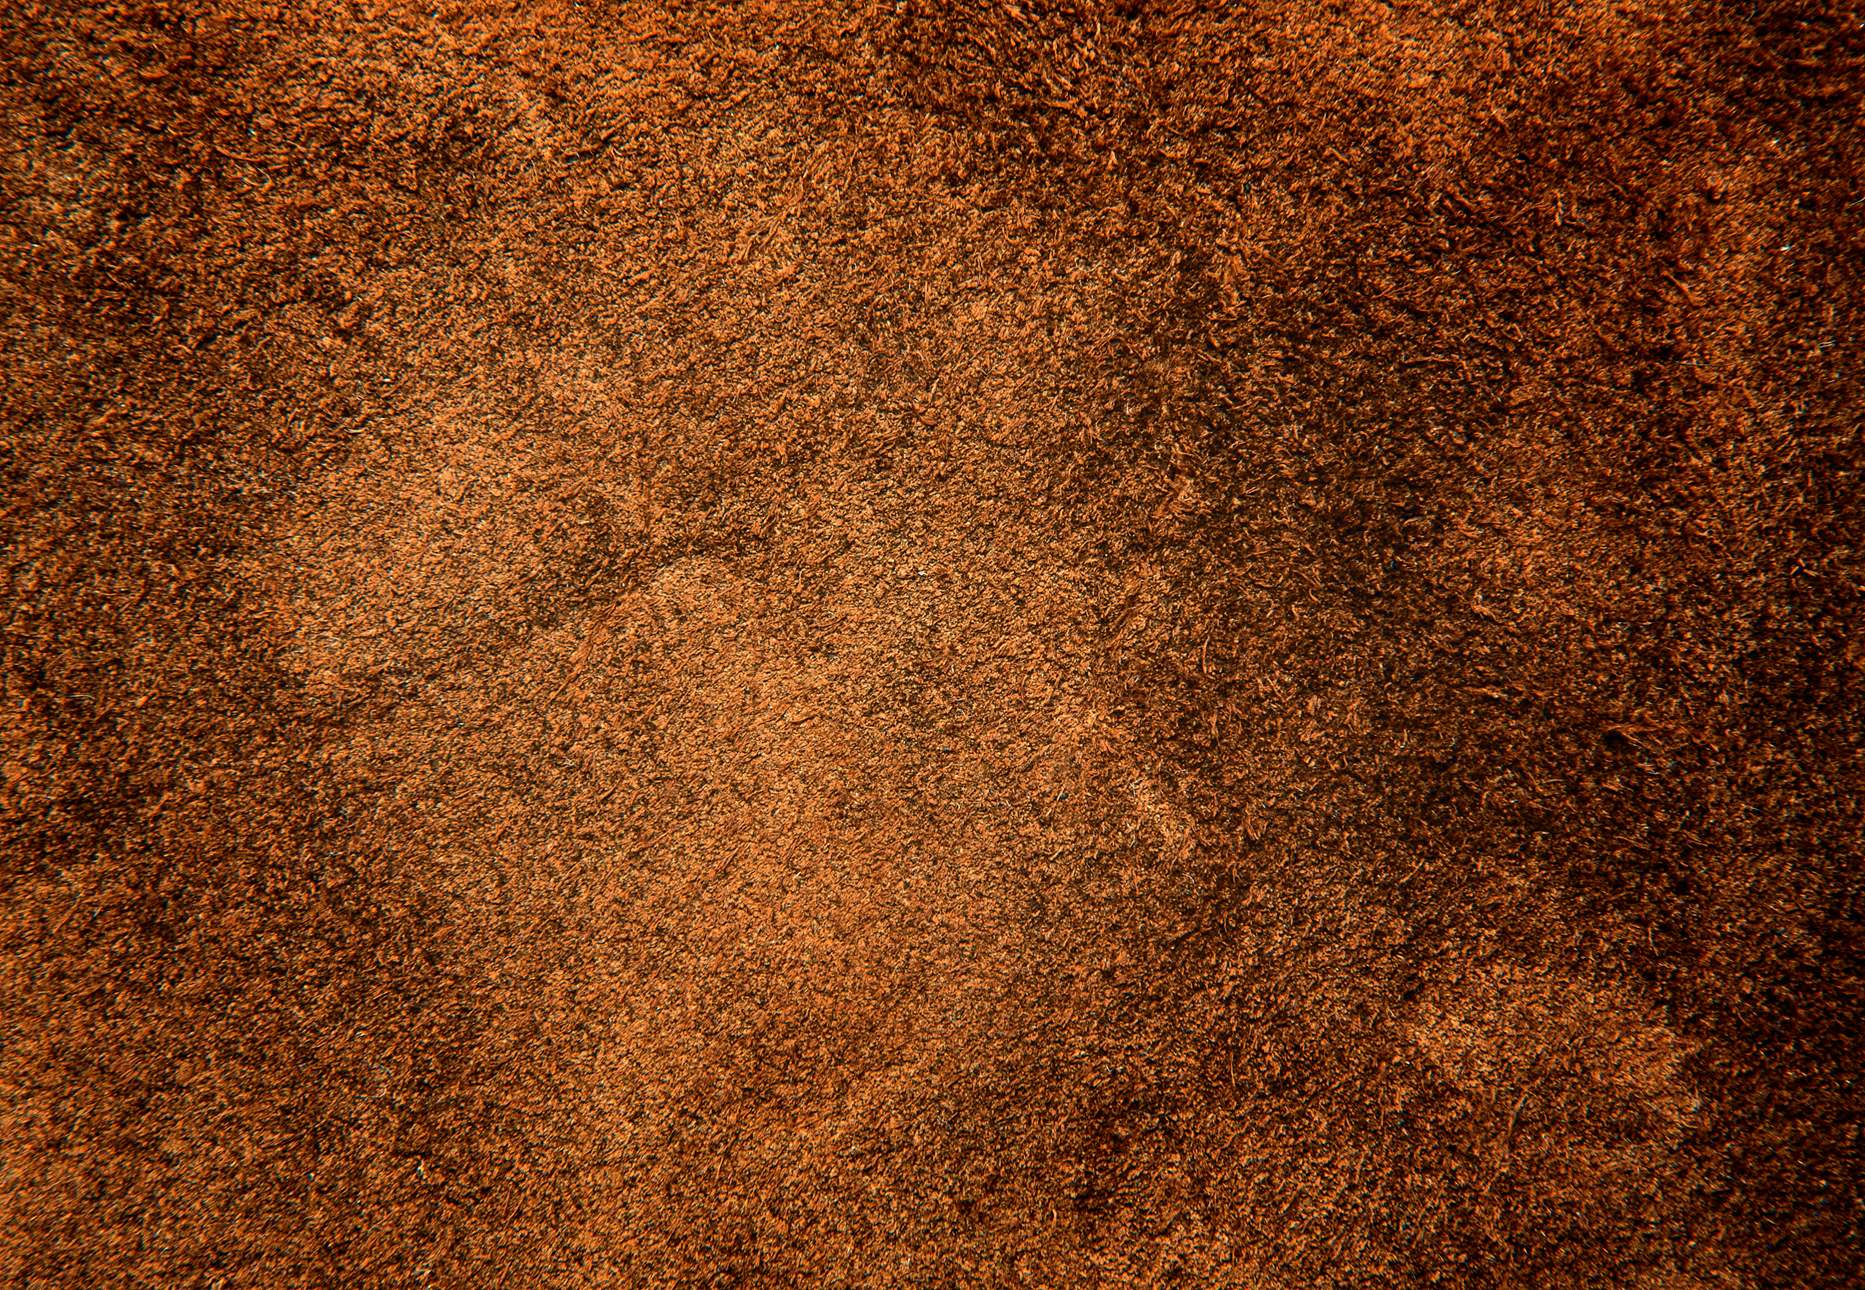 Dark Brown Soft Fluffy Leather Background Texture PhotoHDX